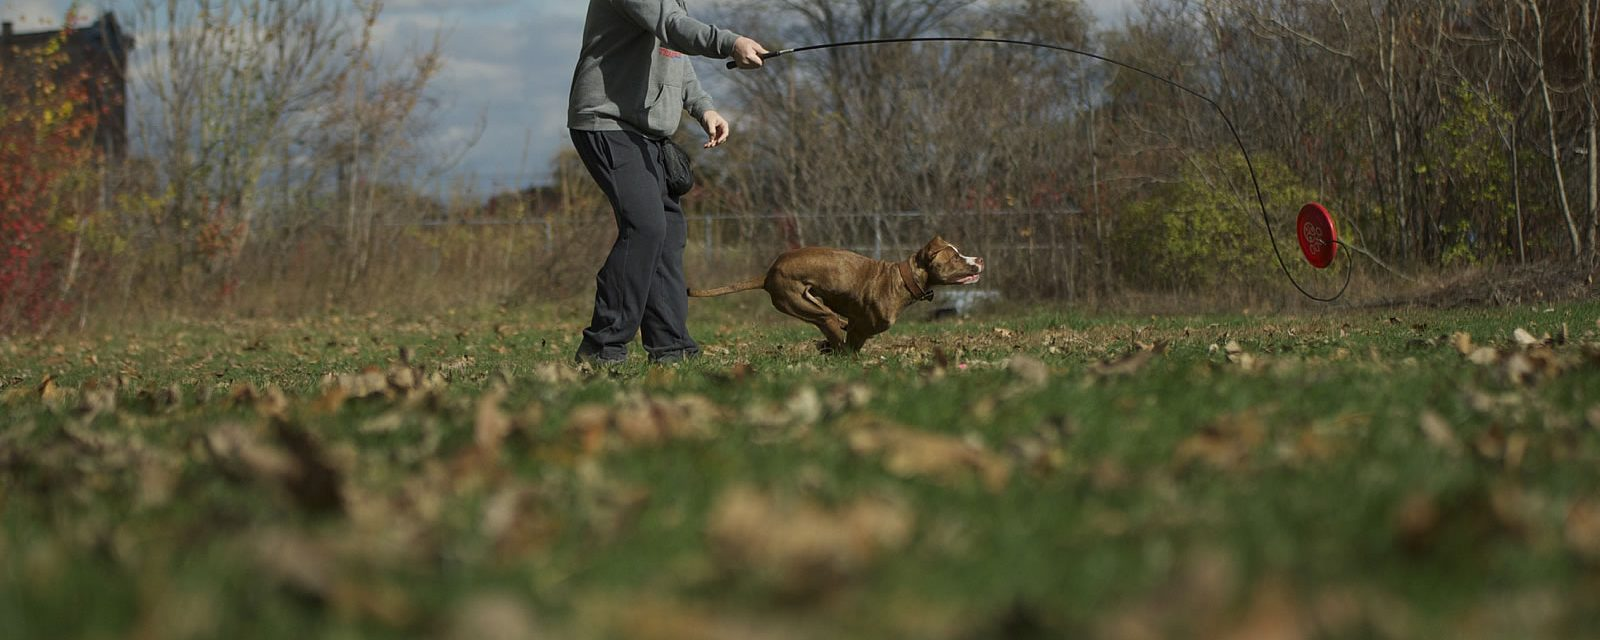 On Engagement in Dog Sports and Dog Training